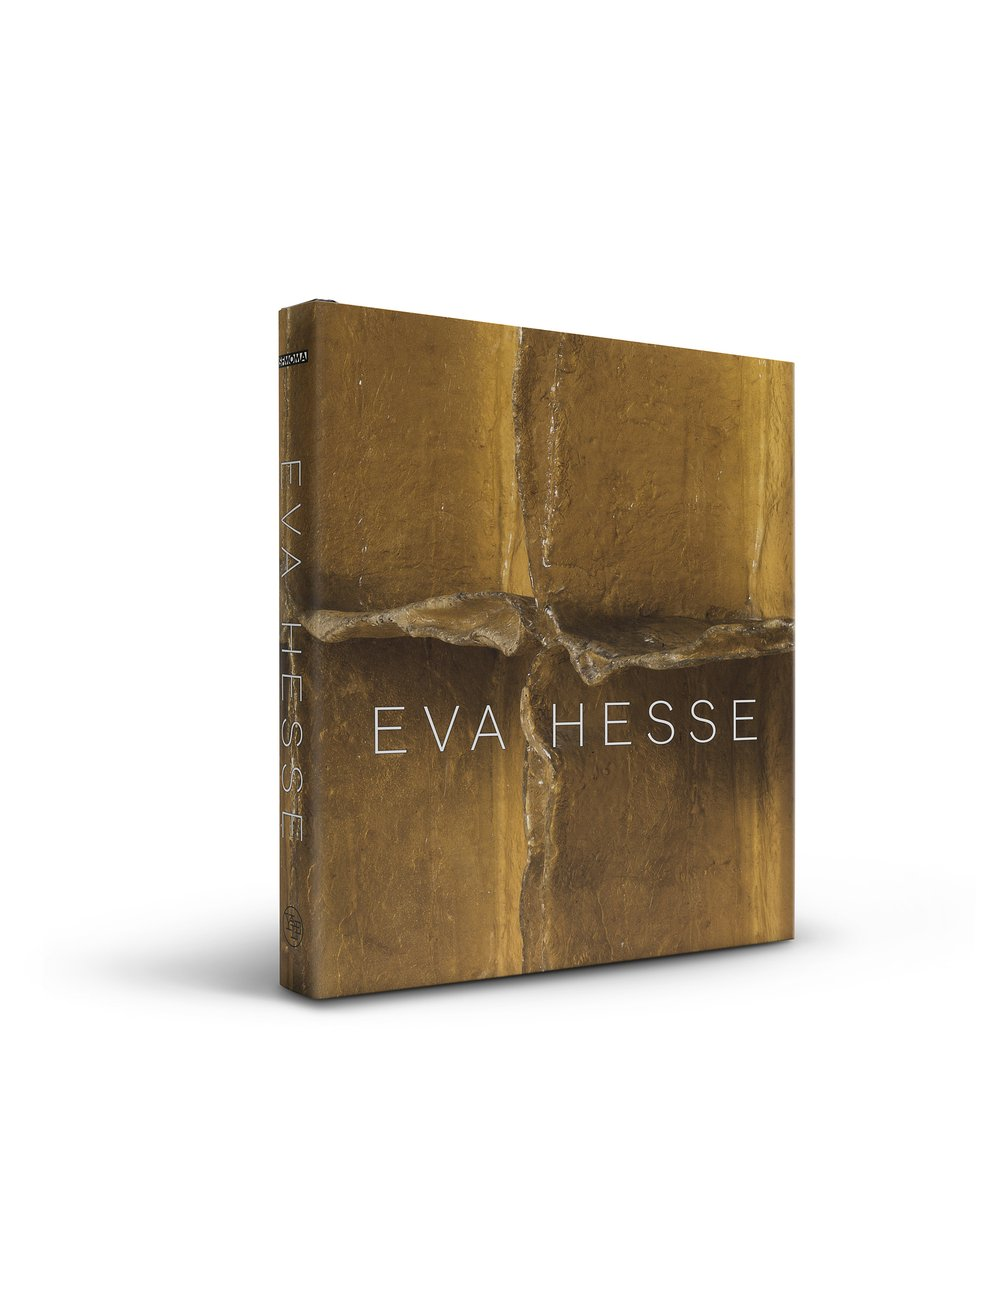 Eva Hesse publication cover